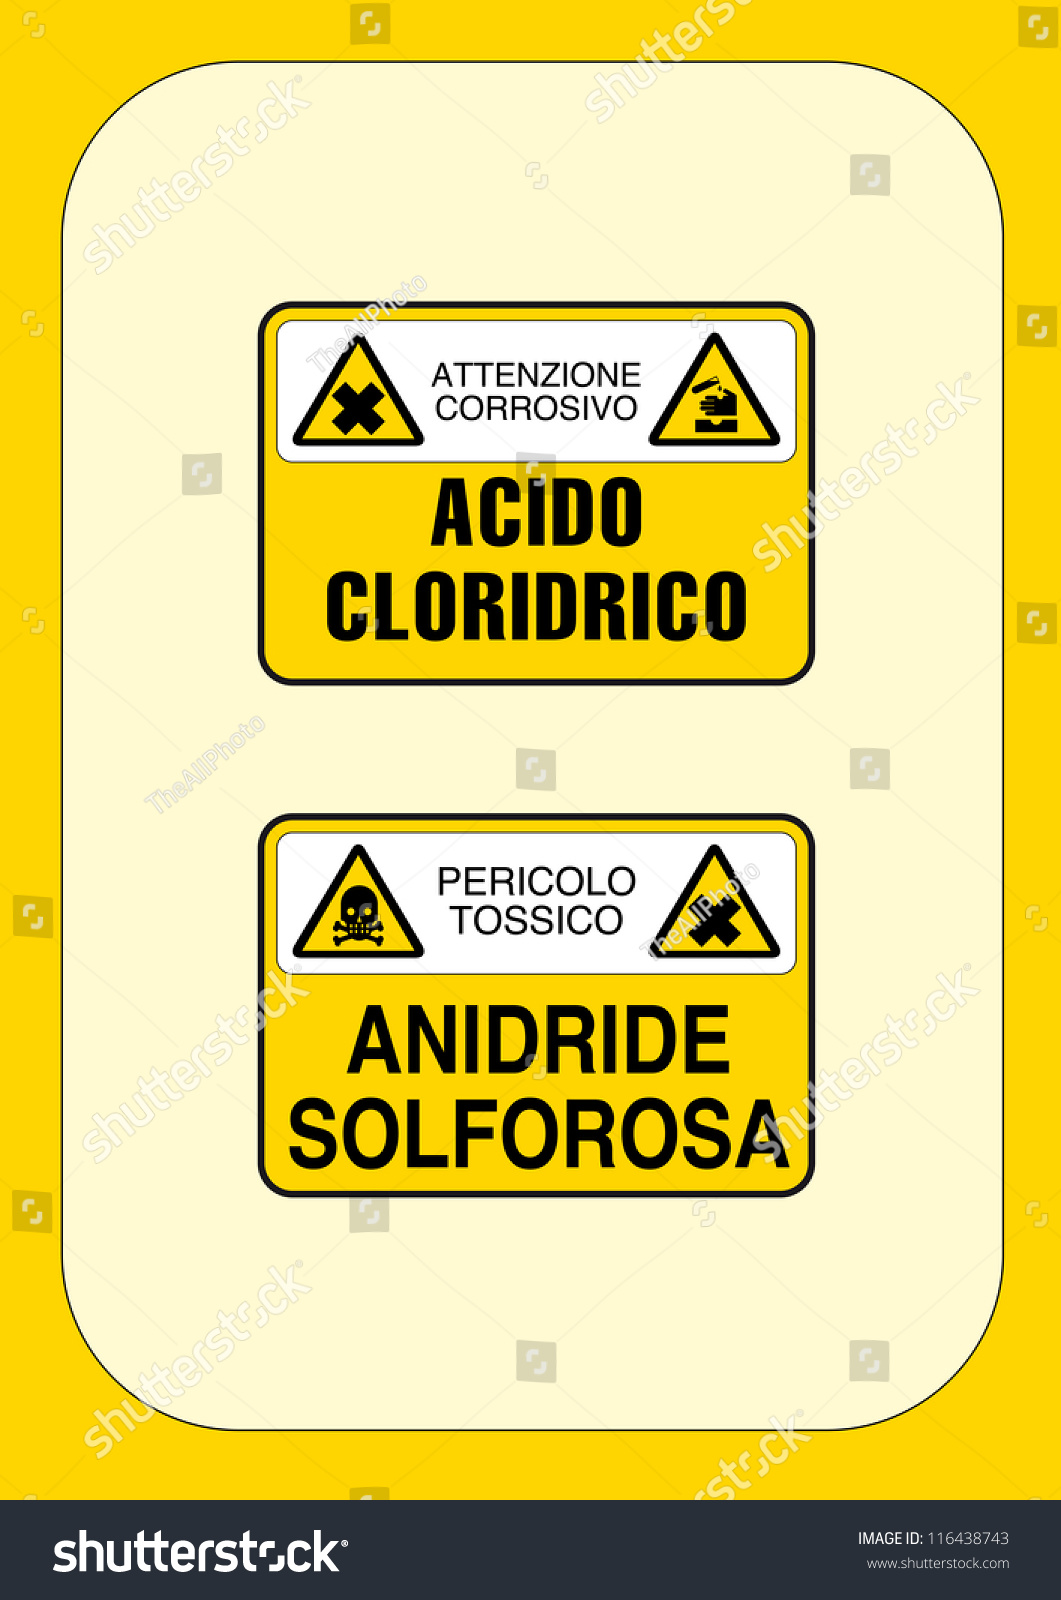 Signal Danger Attention Corrosive Hydrochloric Acid Stock Vector ...